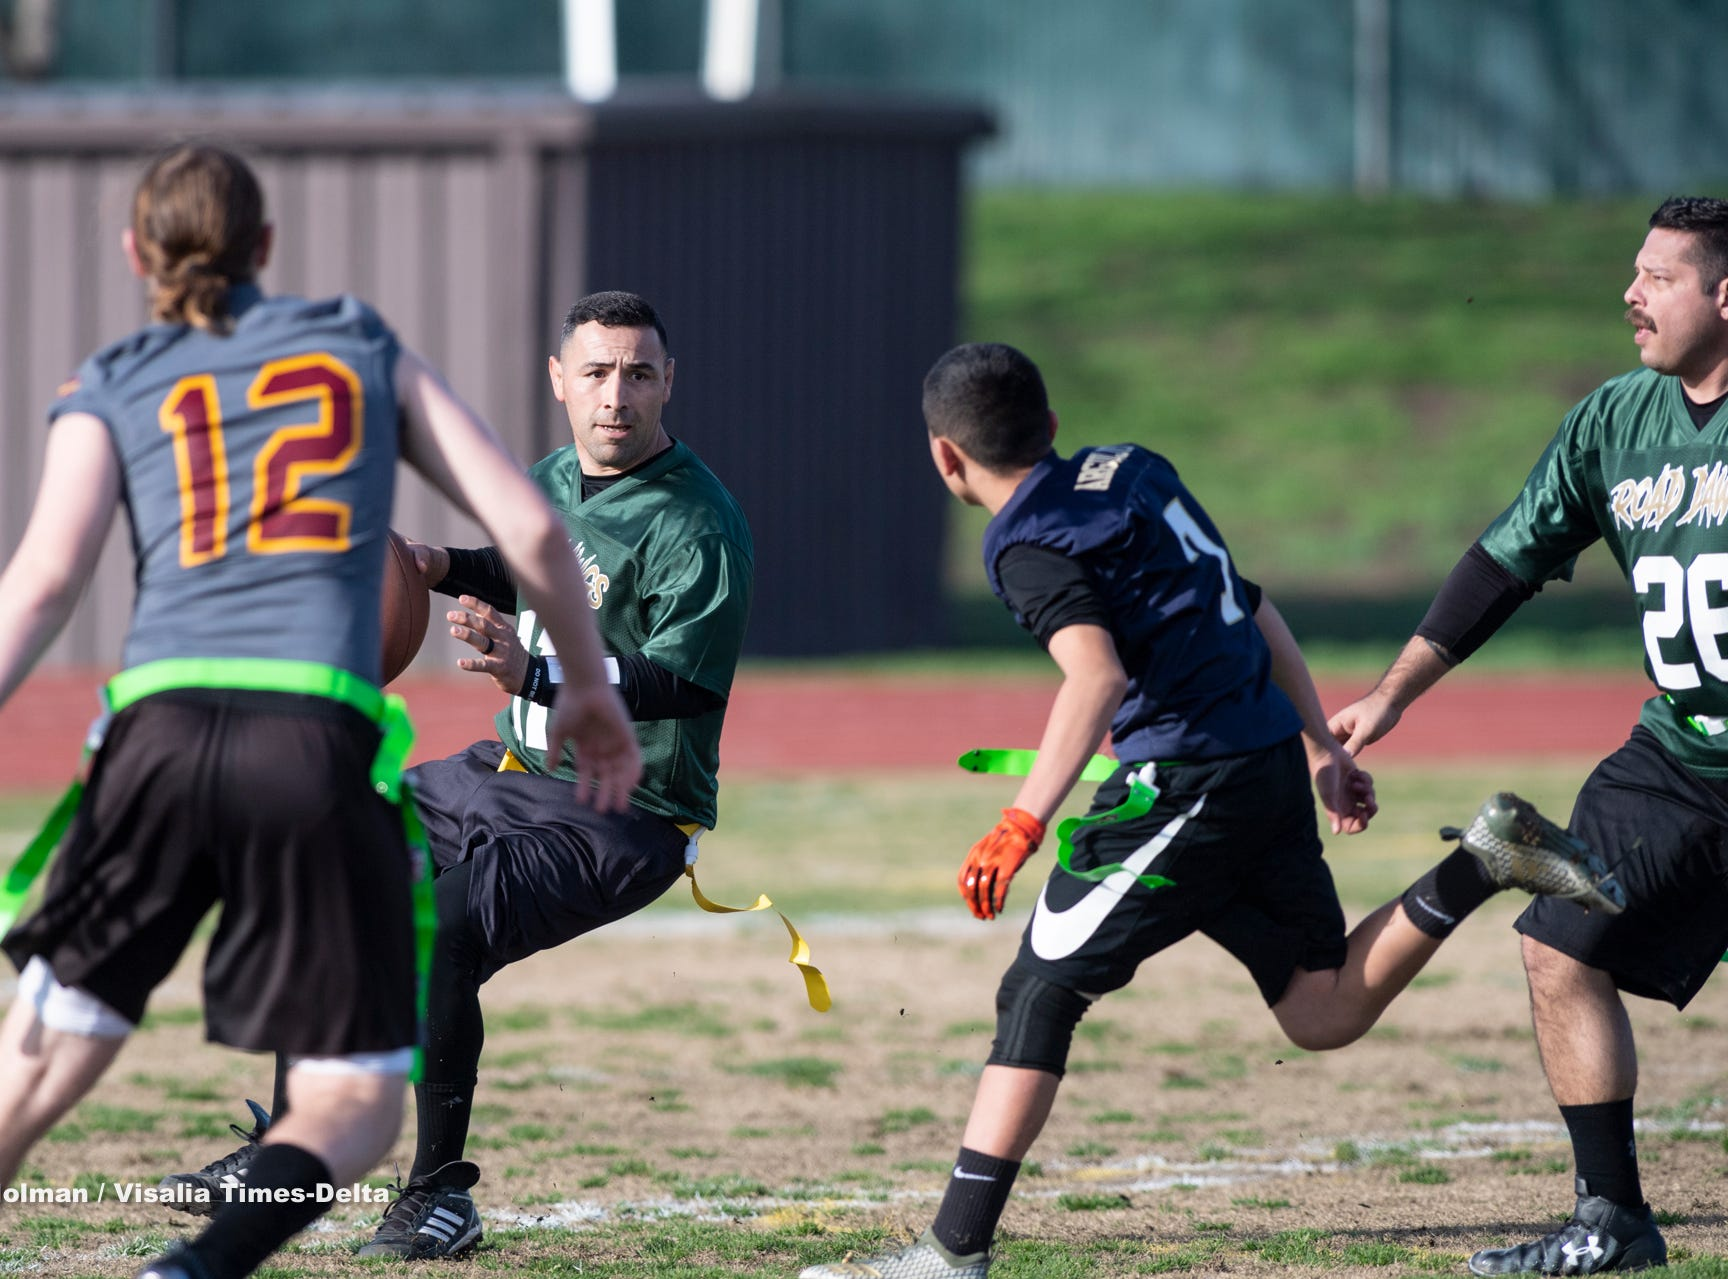 Tulare County Sheriff Department's Road Dawgs took on members of the NFL Past Elite in flag football at Groppetti Automotive Community Stadium on Saturday, January 19, 2019. The benefit game kicks off the Sheriff's new NFL Flag Football League, free for children in grades K through 8, in the unincorporated areas of Tulare County.